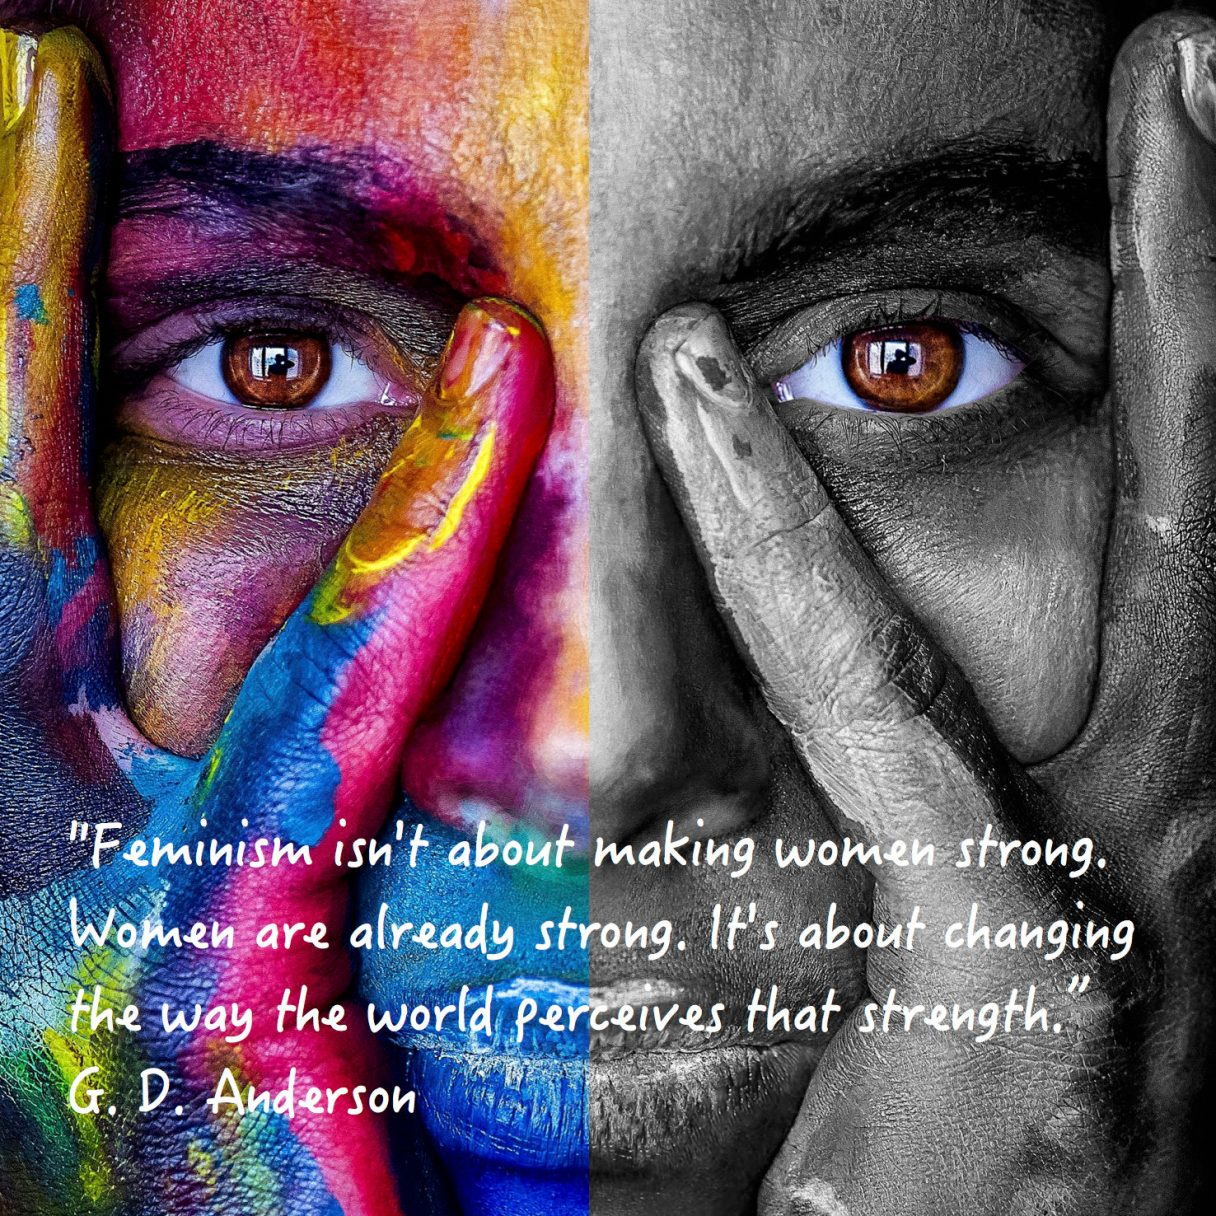 """Citat af G.D. Anderson: """"Feminism isn't about making women strong. Women are already strong. It's about changing the way the world perceives that strenght."""" Originalfoto: pixabay.com. Citatillustration: Maria Busch"""